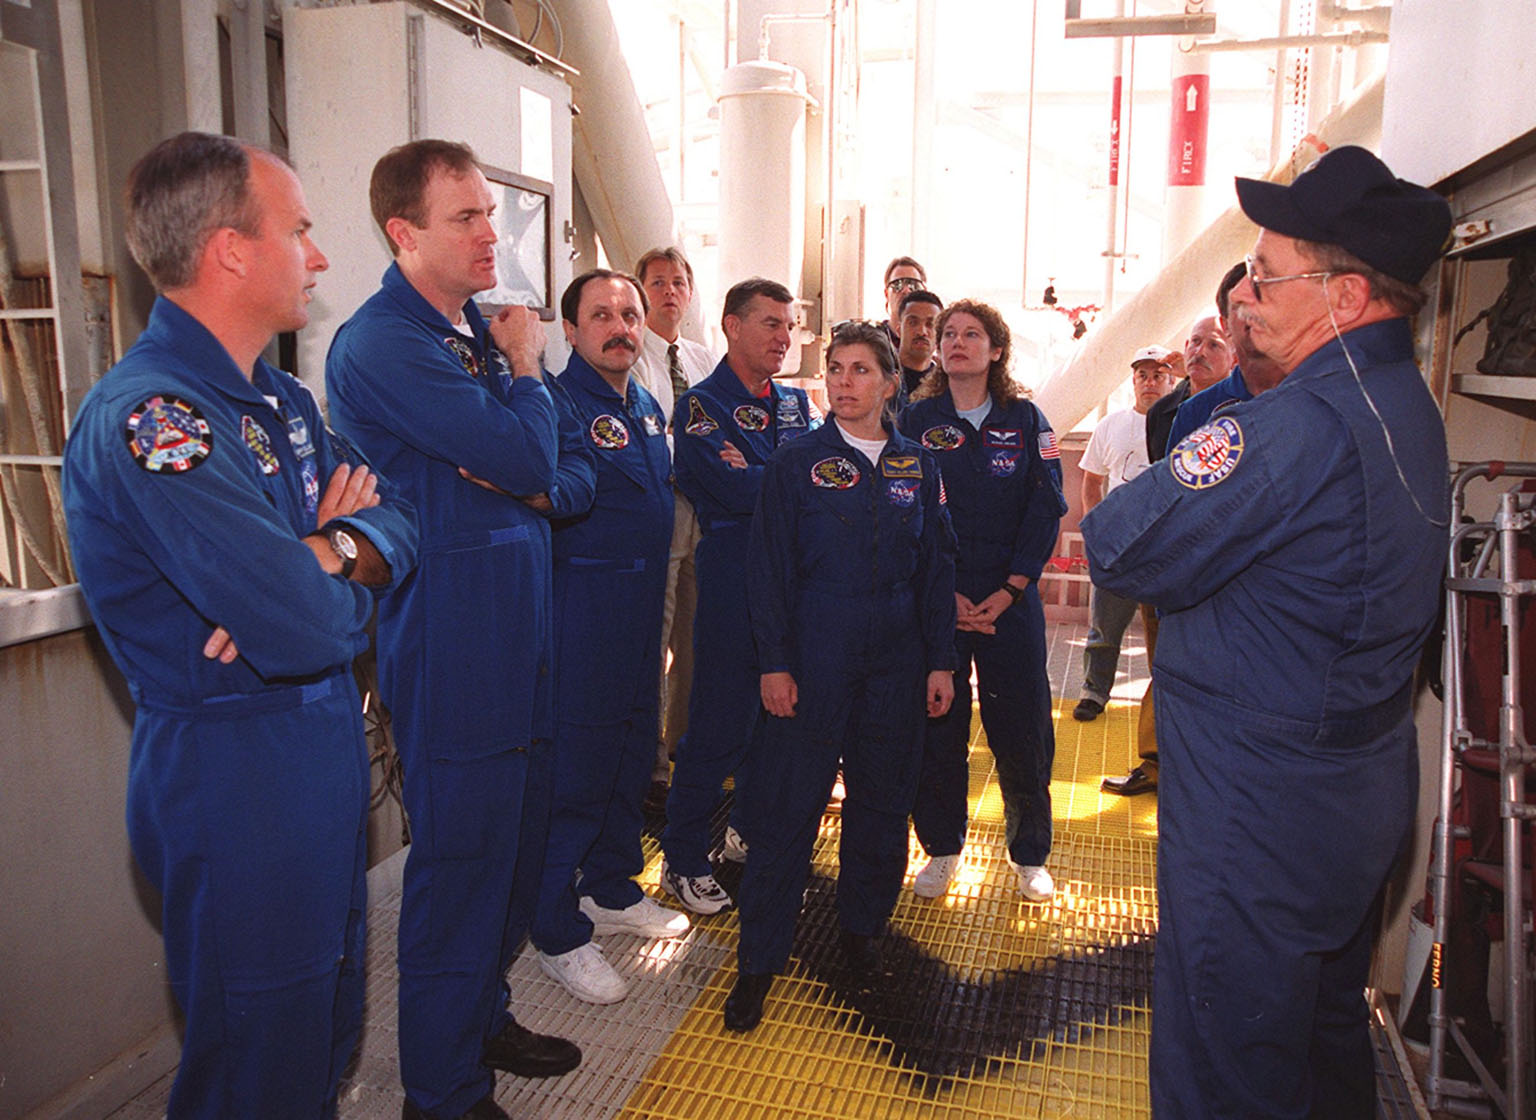 KENNEDY SPACE CENTER, Fla. -- At the 195-foot level of the Fixed Service Structure on Launch Pad 39A, the STS-101 crew take part in training during a Terminal Countdown Demonstration Test (TCDT). Activities during TCDT include emergency egress from the orbiter and a dress rehearsal for launch. Standing left to right are Pilot Scott Horowitz, Jeffrey Williams, Commander James Halsell, and Mission Specialists Yury Usachev, James Voss, Mary Ellen Weber, and Susan Helms. At right is trainer Capt. George Hoggard of the KSC/CCAS Fire Department. Not seen in the photo is Pilot Scott Horowitz. During their mission to the International Space Station, the STS-101 crew will be delivering logistics and supplies, plus preparing the Station for the arrival of the Zvezda Service Module, expected to be launched by Russia in July 2000. Also, the crew will conduct one space walk to perform maintenance on the Space Station. This will be the third assembly flight for the Space Station. STS-101 is scheduled to launch April 24 at 4:15 p.m. from Launch Pad 39A